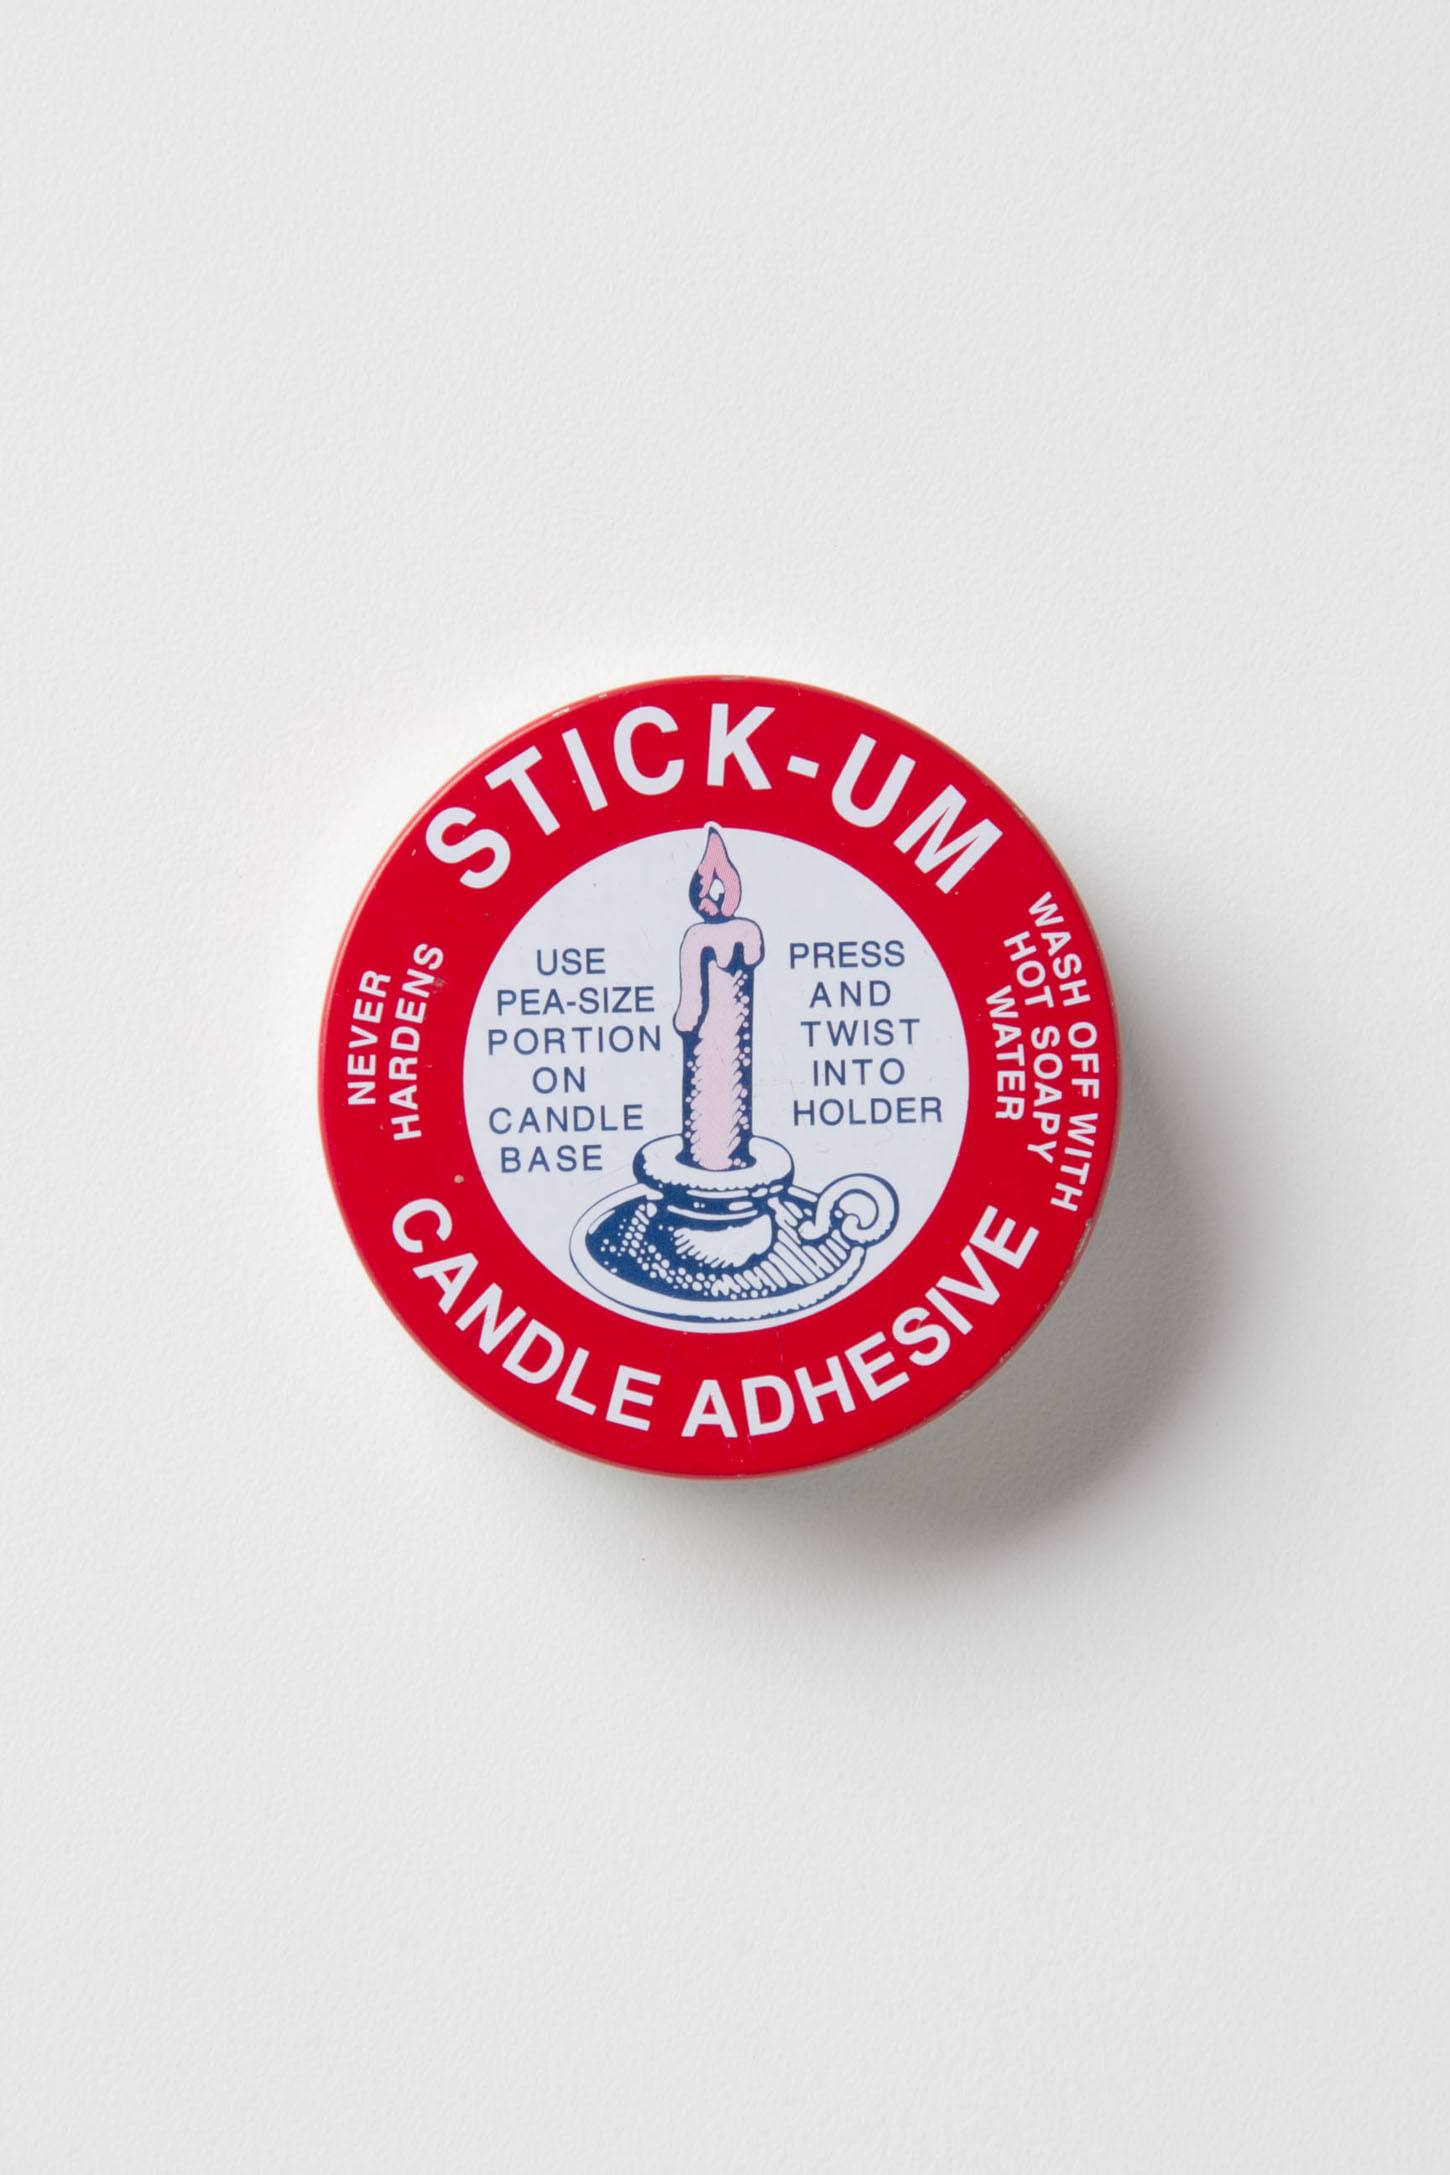 Slide View: 1: Stick-Um Candle Adhesive